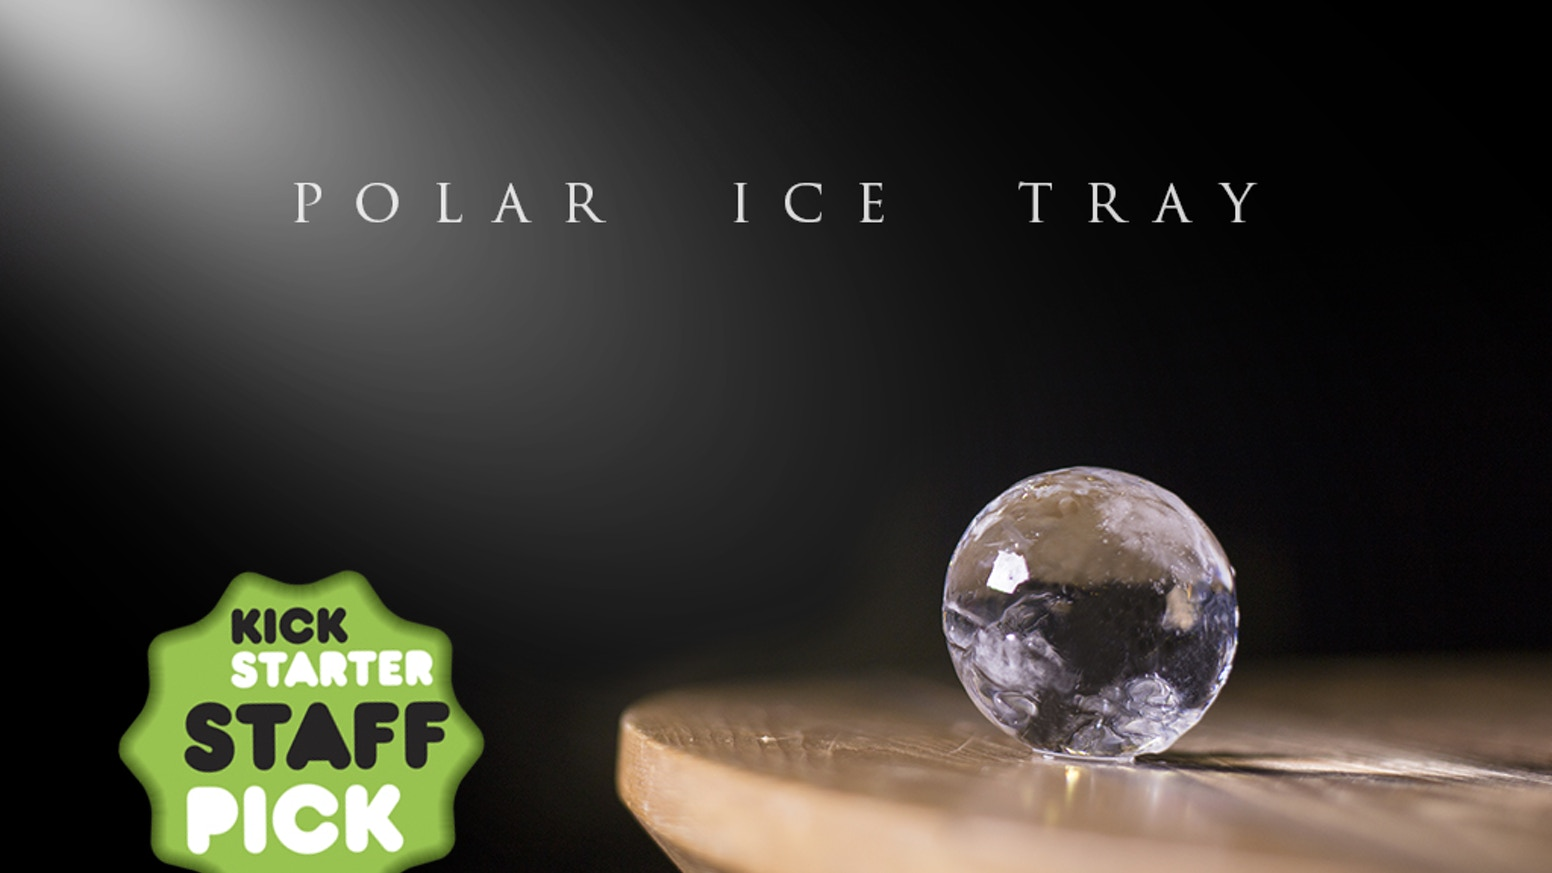 Having trouble making great drinks at home? Ice plays a key role! Enjoy high-quality drinks without going out to a bar.